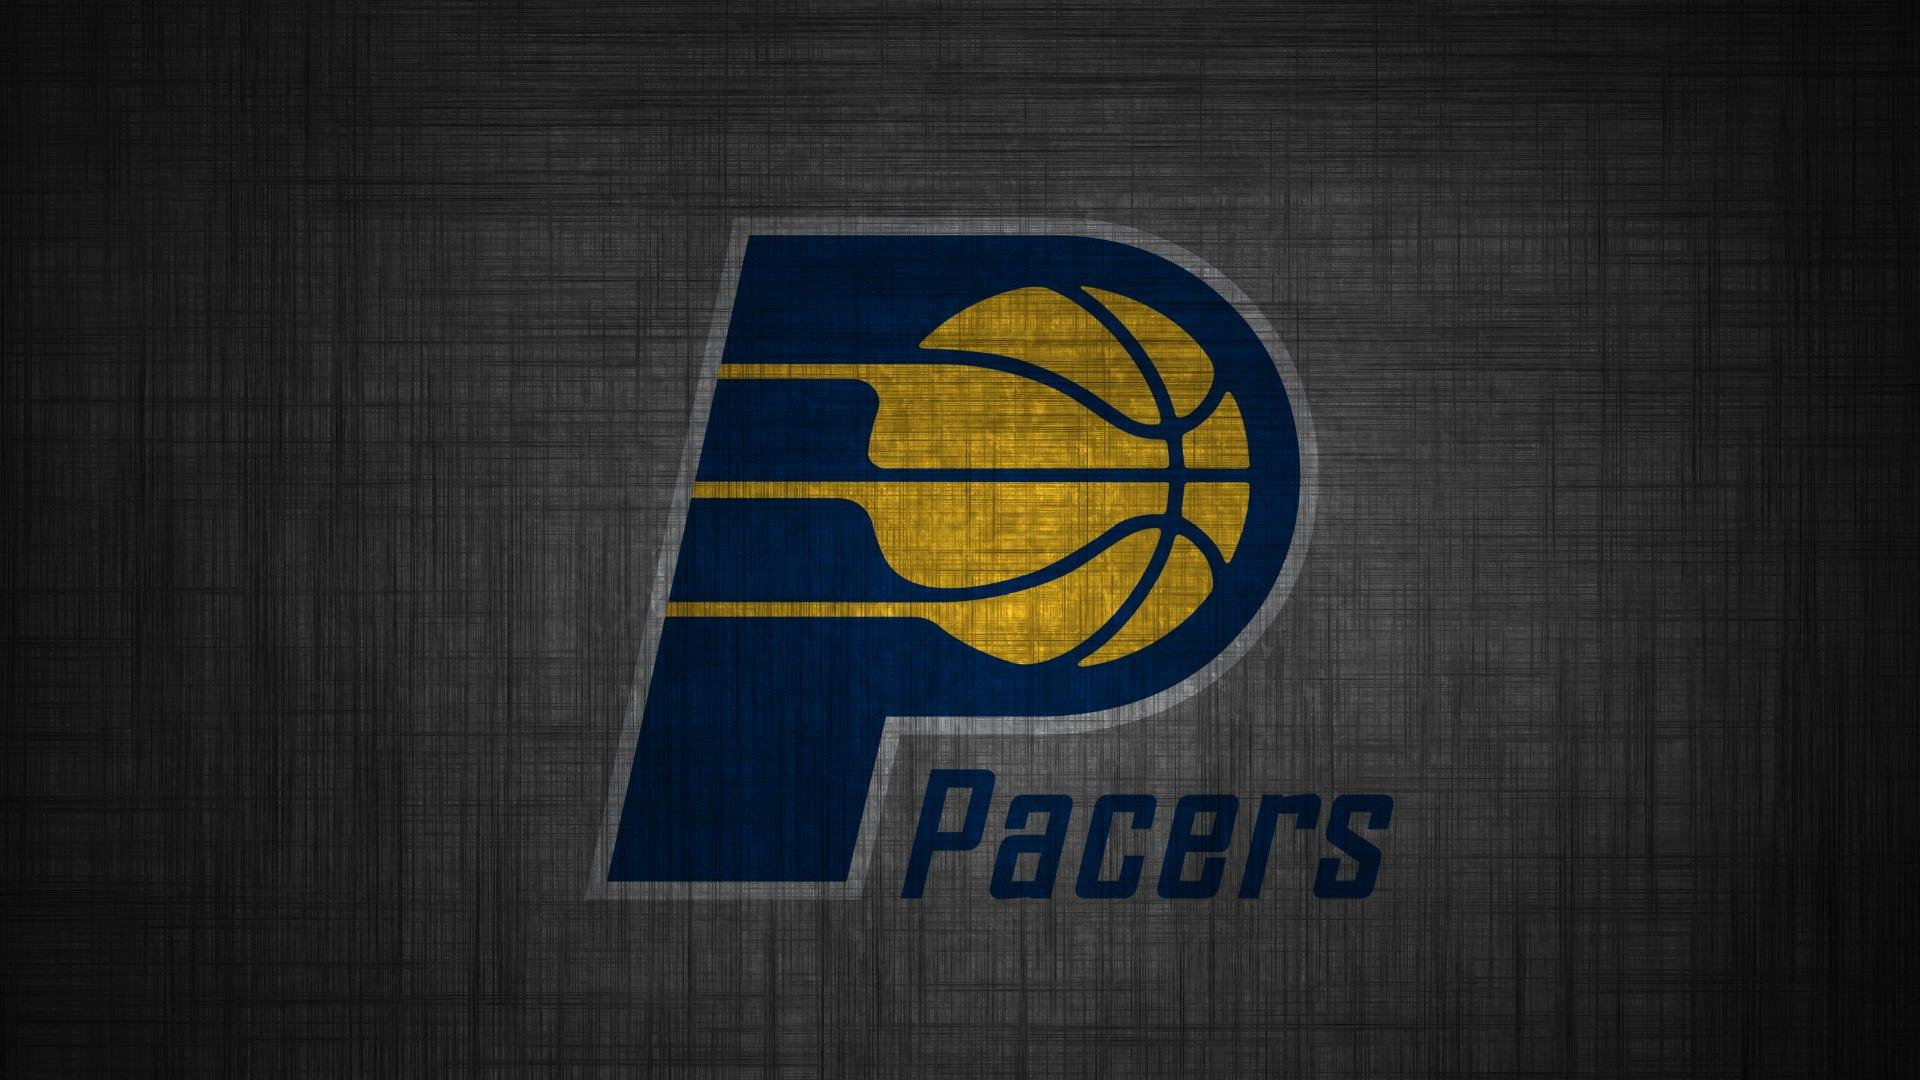 Indiana Pacers Wallpaper Image Group (42+)